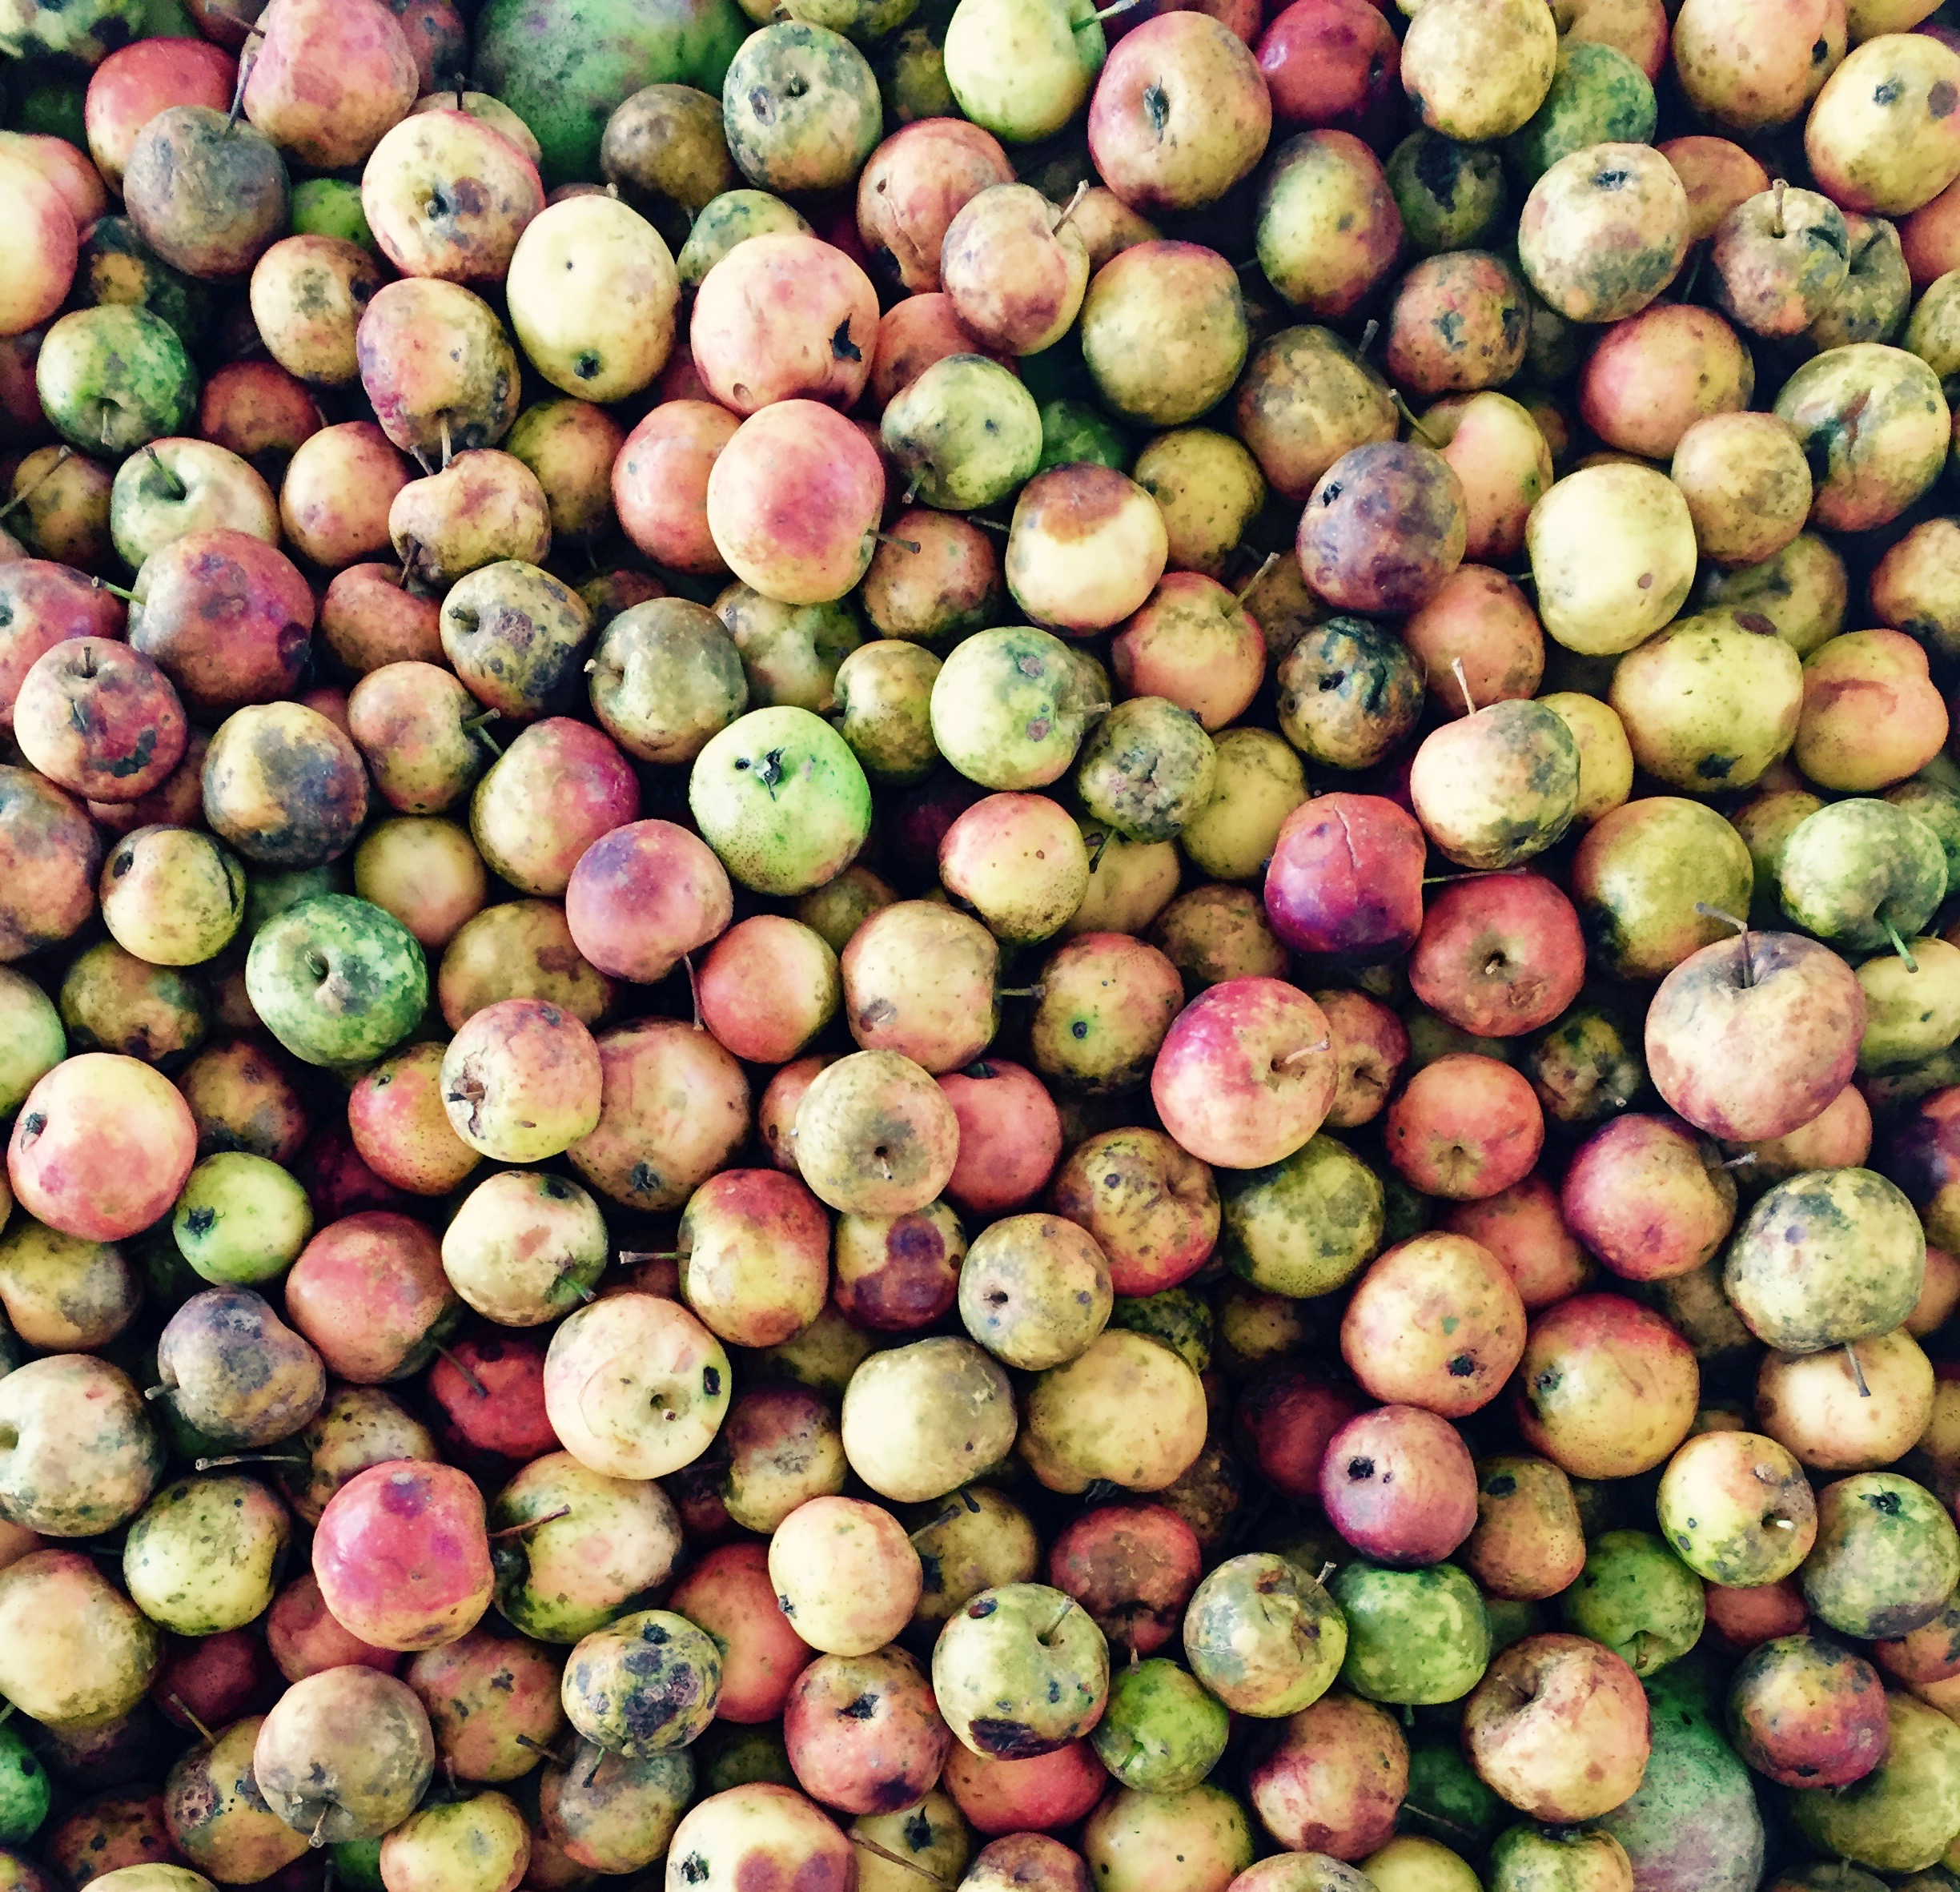 Hewe's Crab Apples from Foggy Ridge Orchard, Dugspur, Virginia